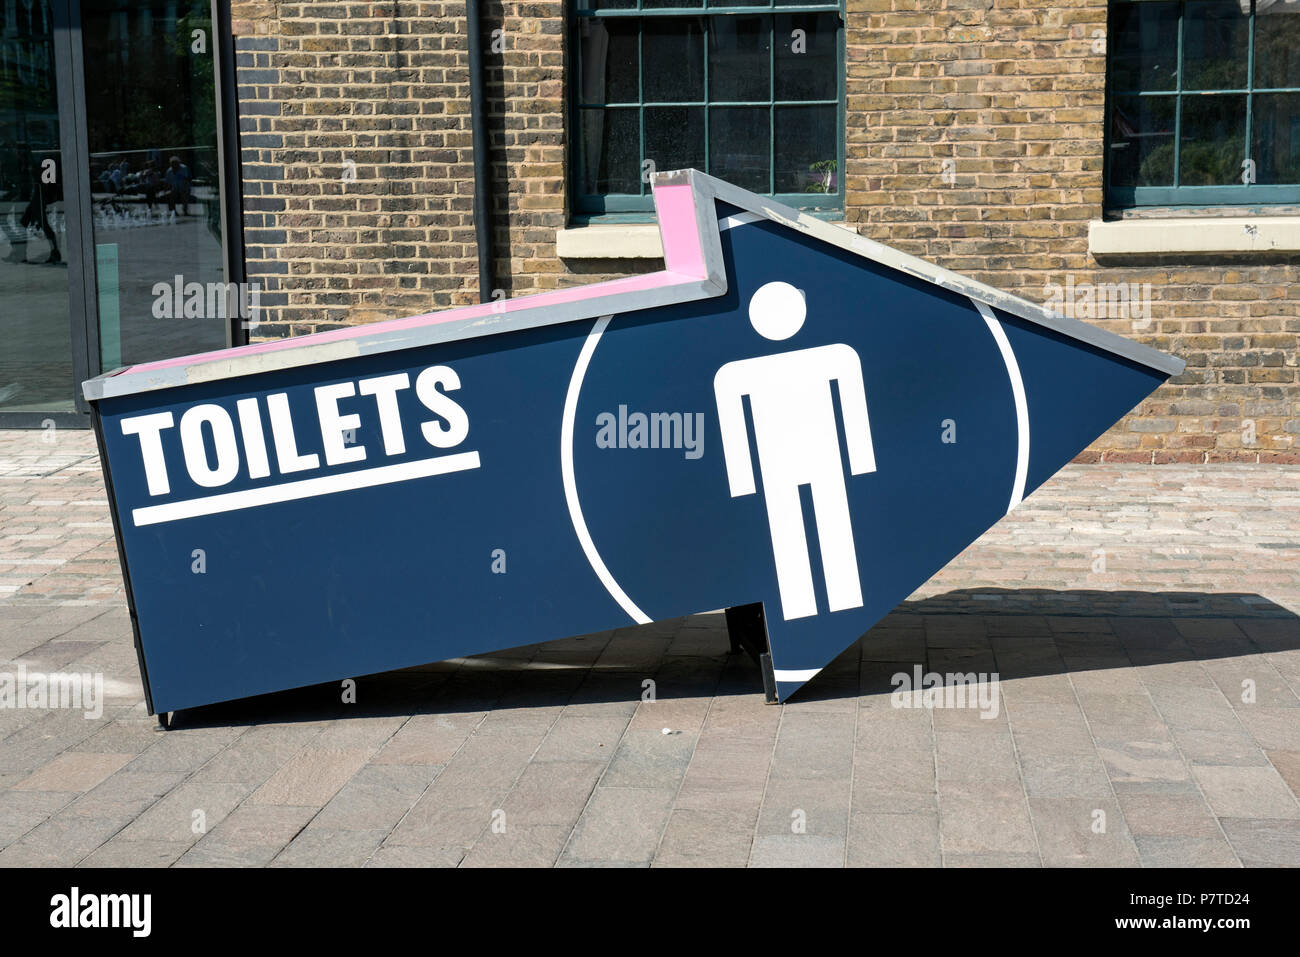 Toilets Sign Stock Photos & Toilets Sign Stock Images - Alamy